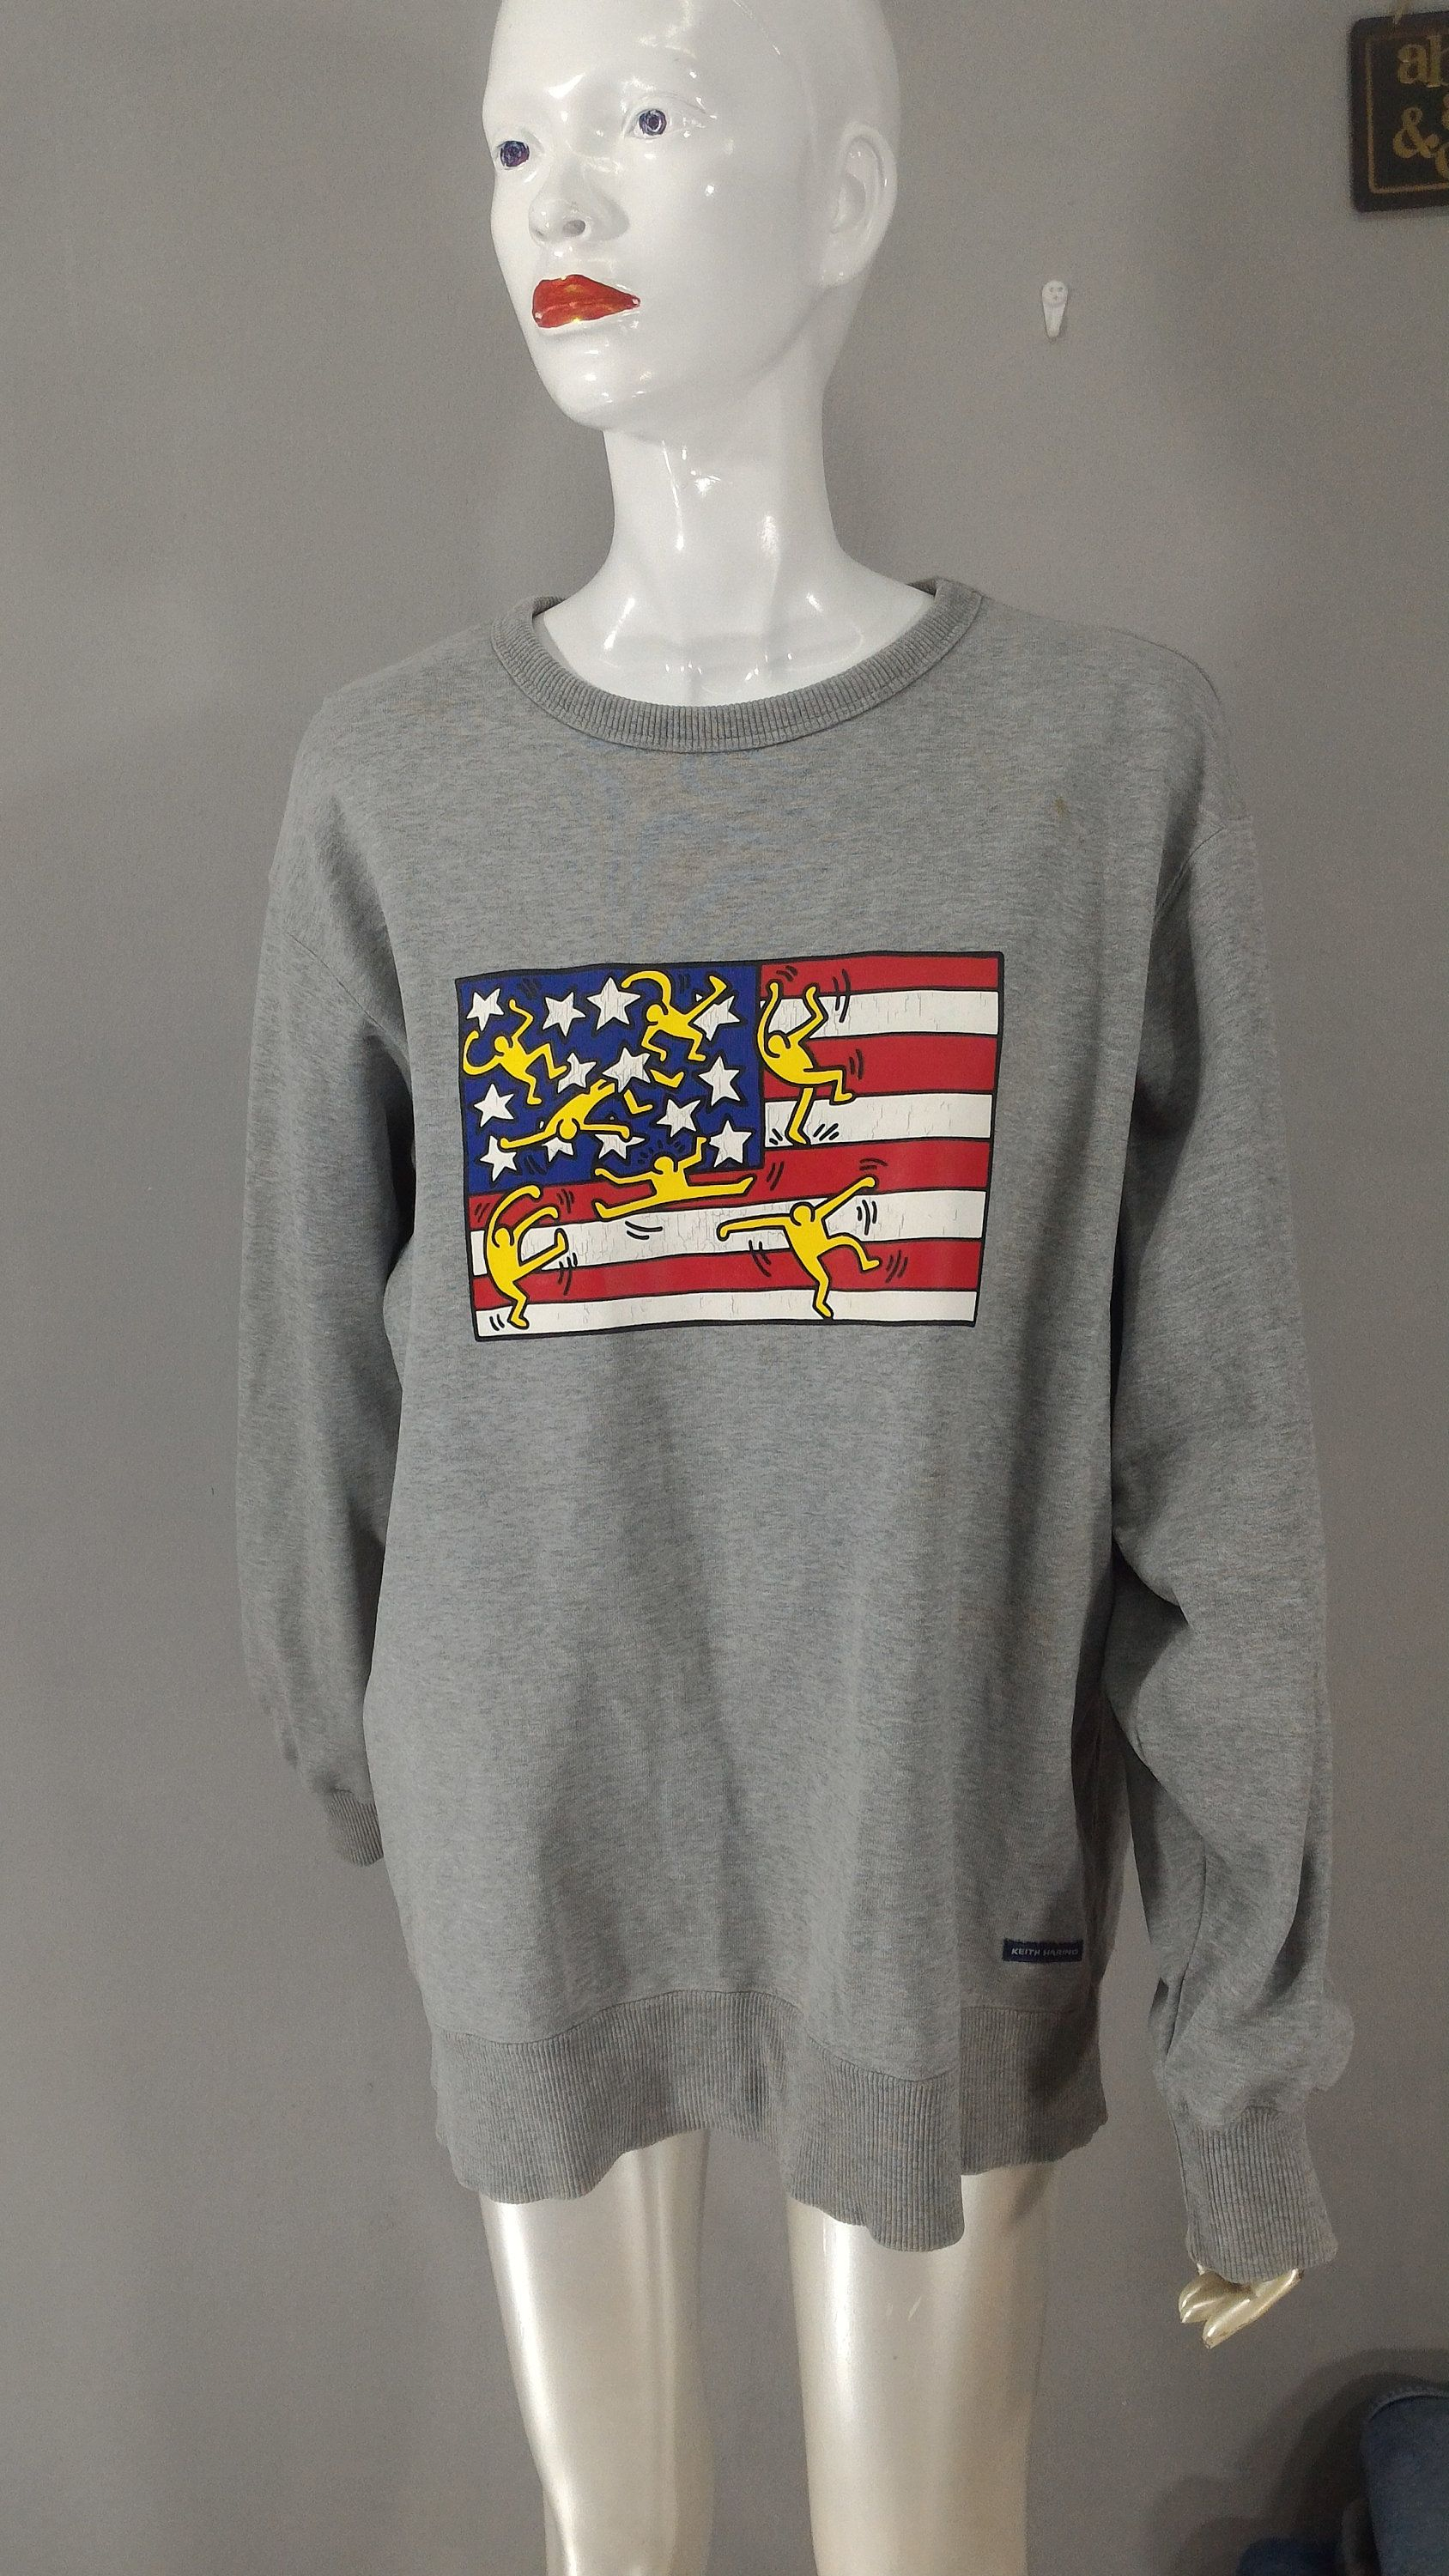 KEITH HARING Sweatshirt American Flag Art Print Grey Color XL Vintage 90s Sweatshirt Pullover Jumper Oversize For Men's and Women's #americanflagart